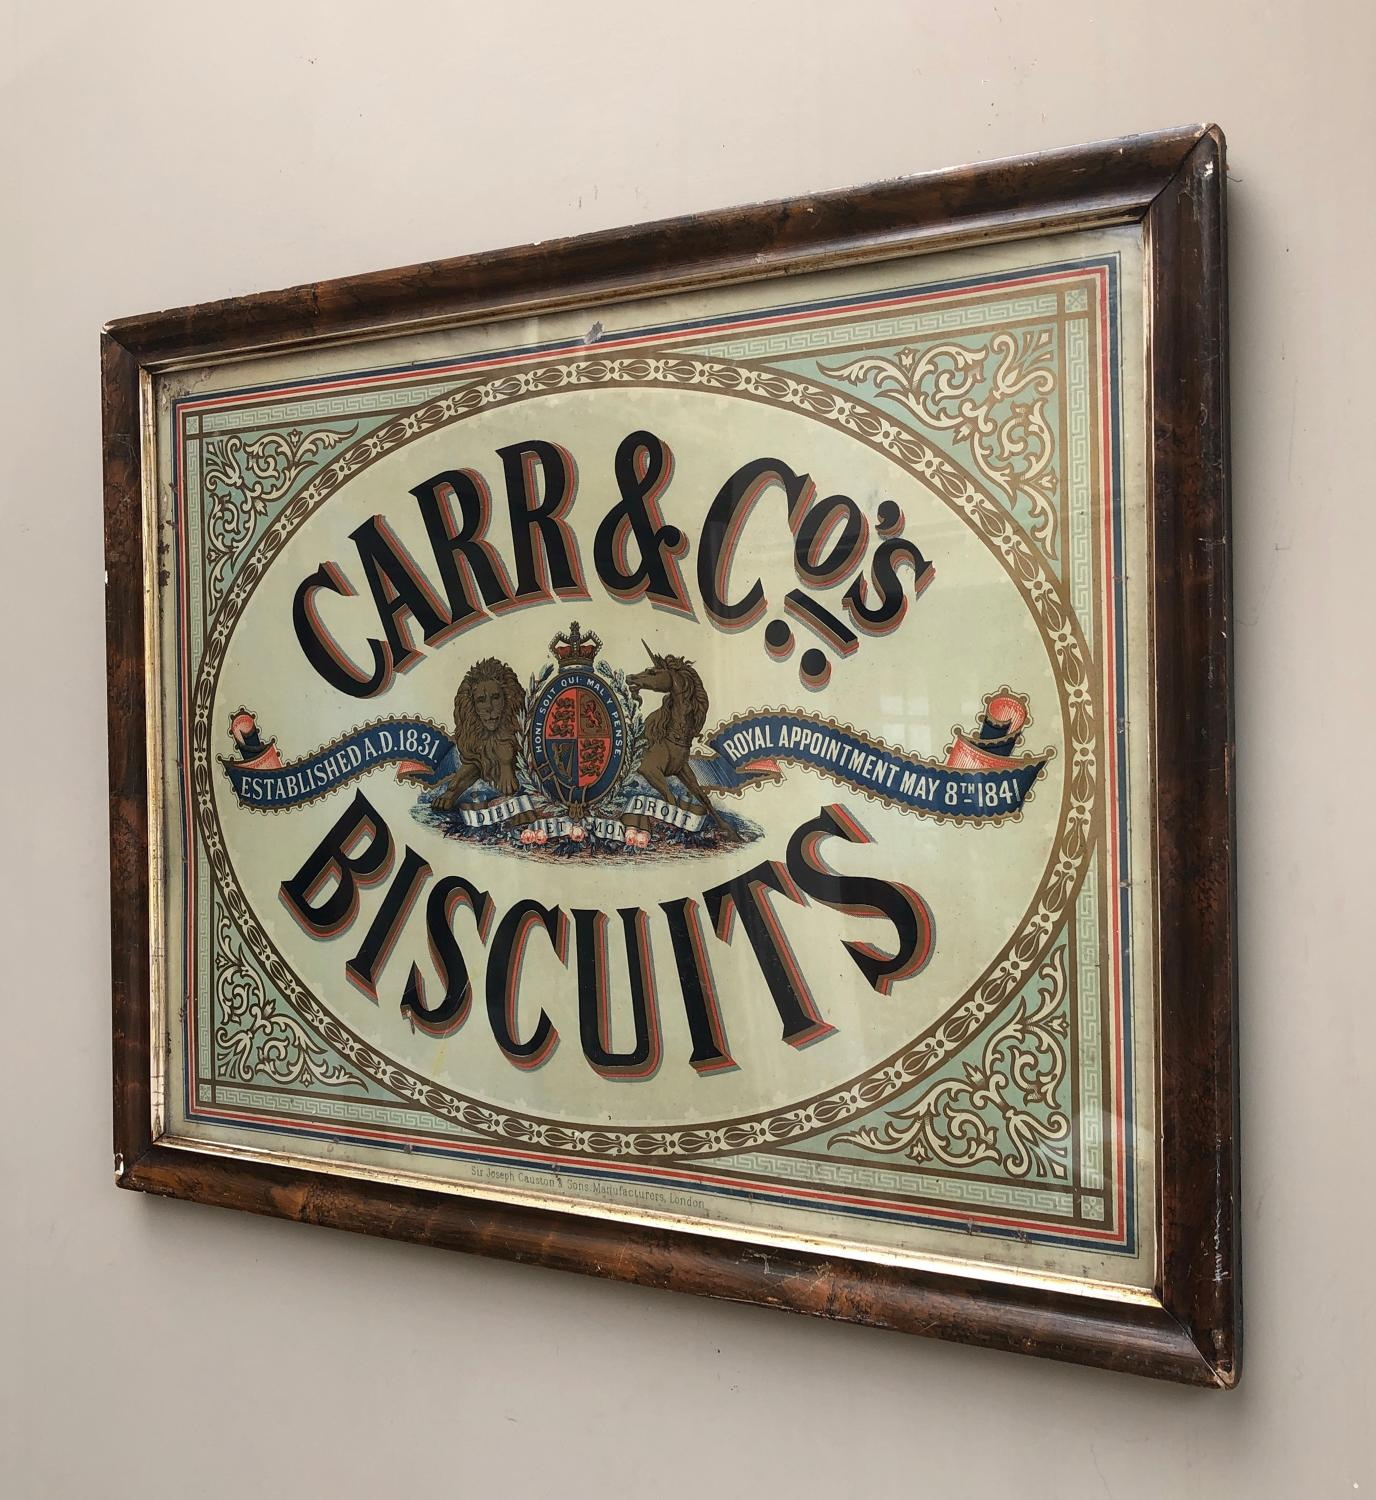 Victorian Tin Advertising Sign - Carr & Co's Biscuits By Royal Appoint